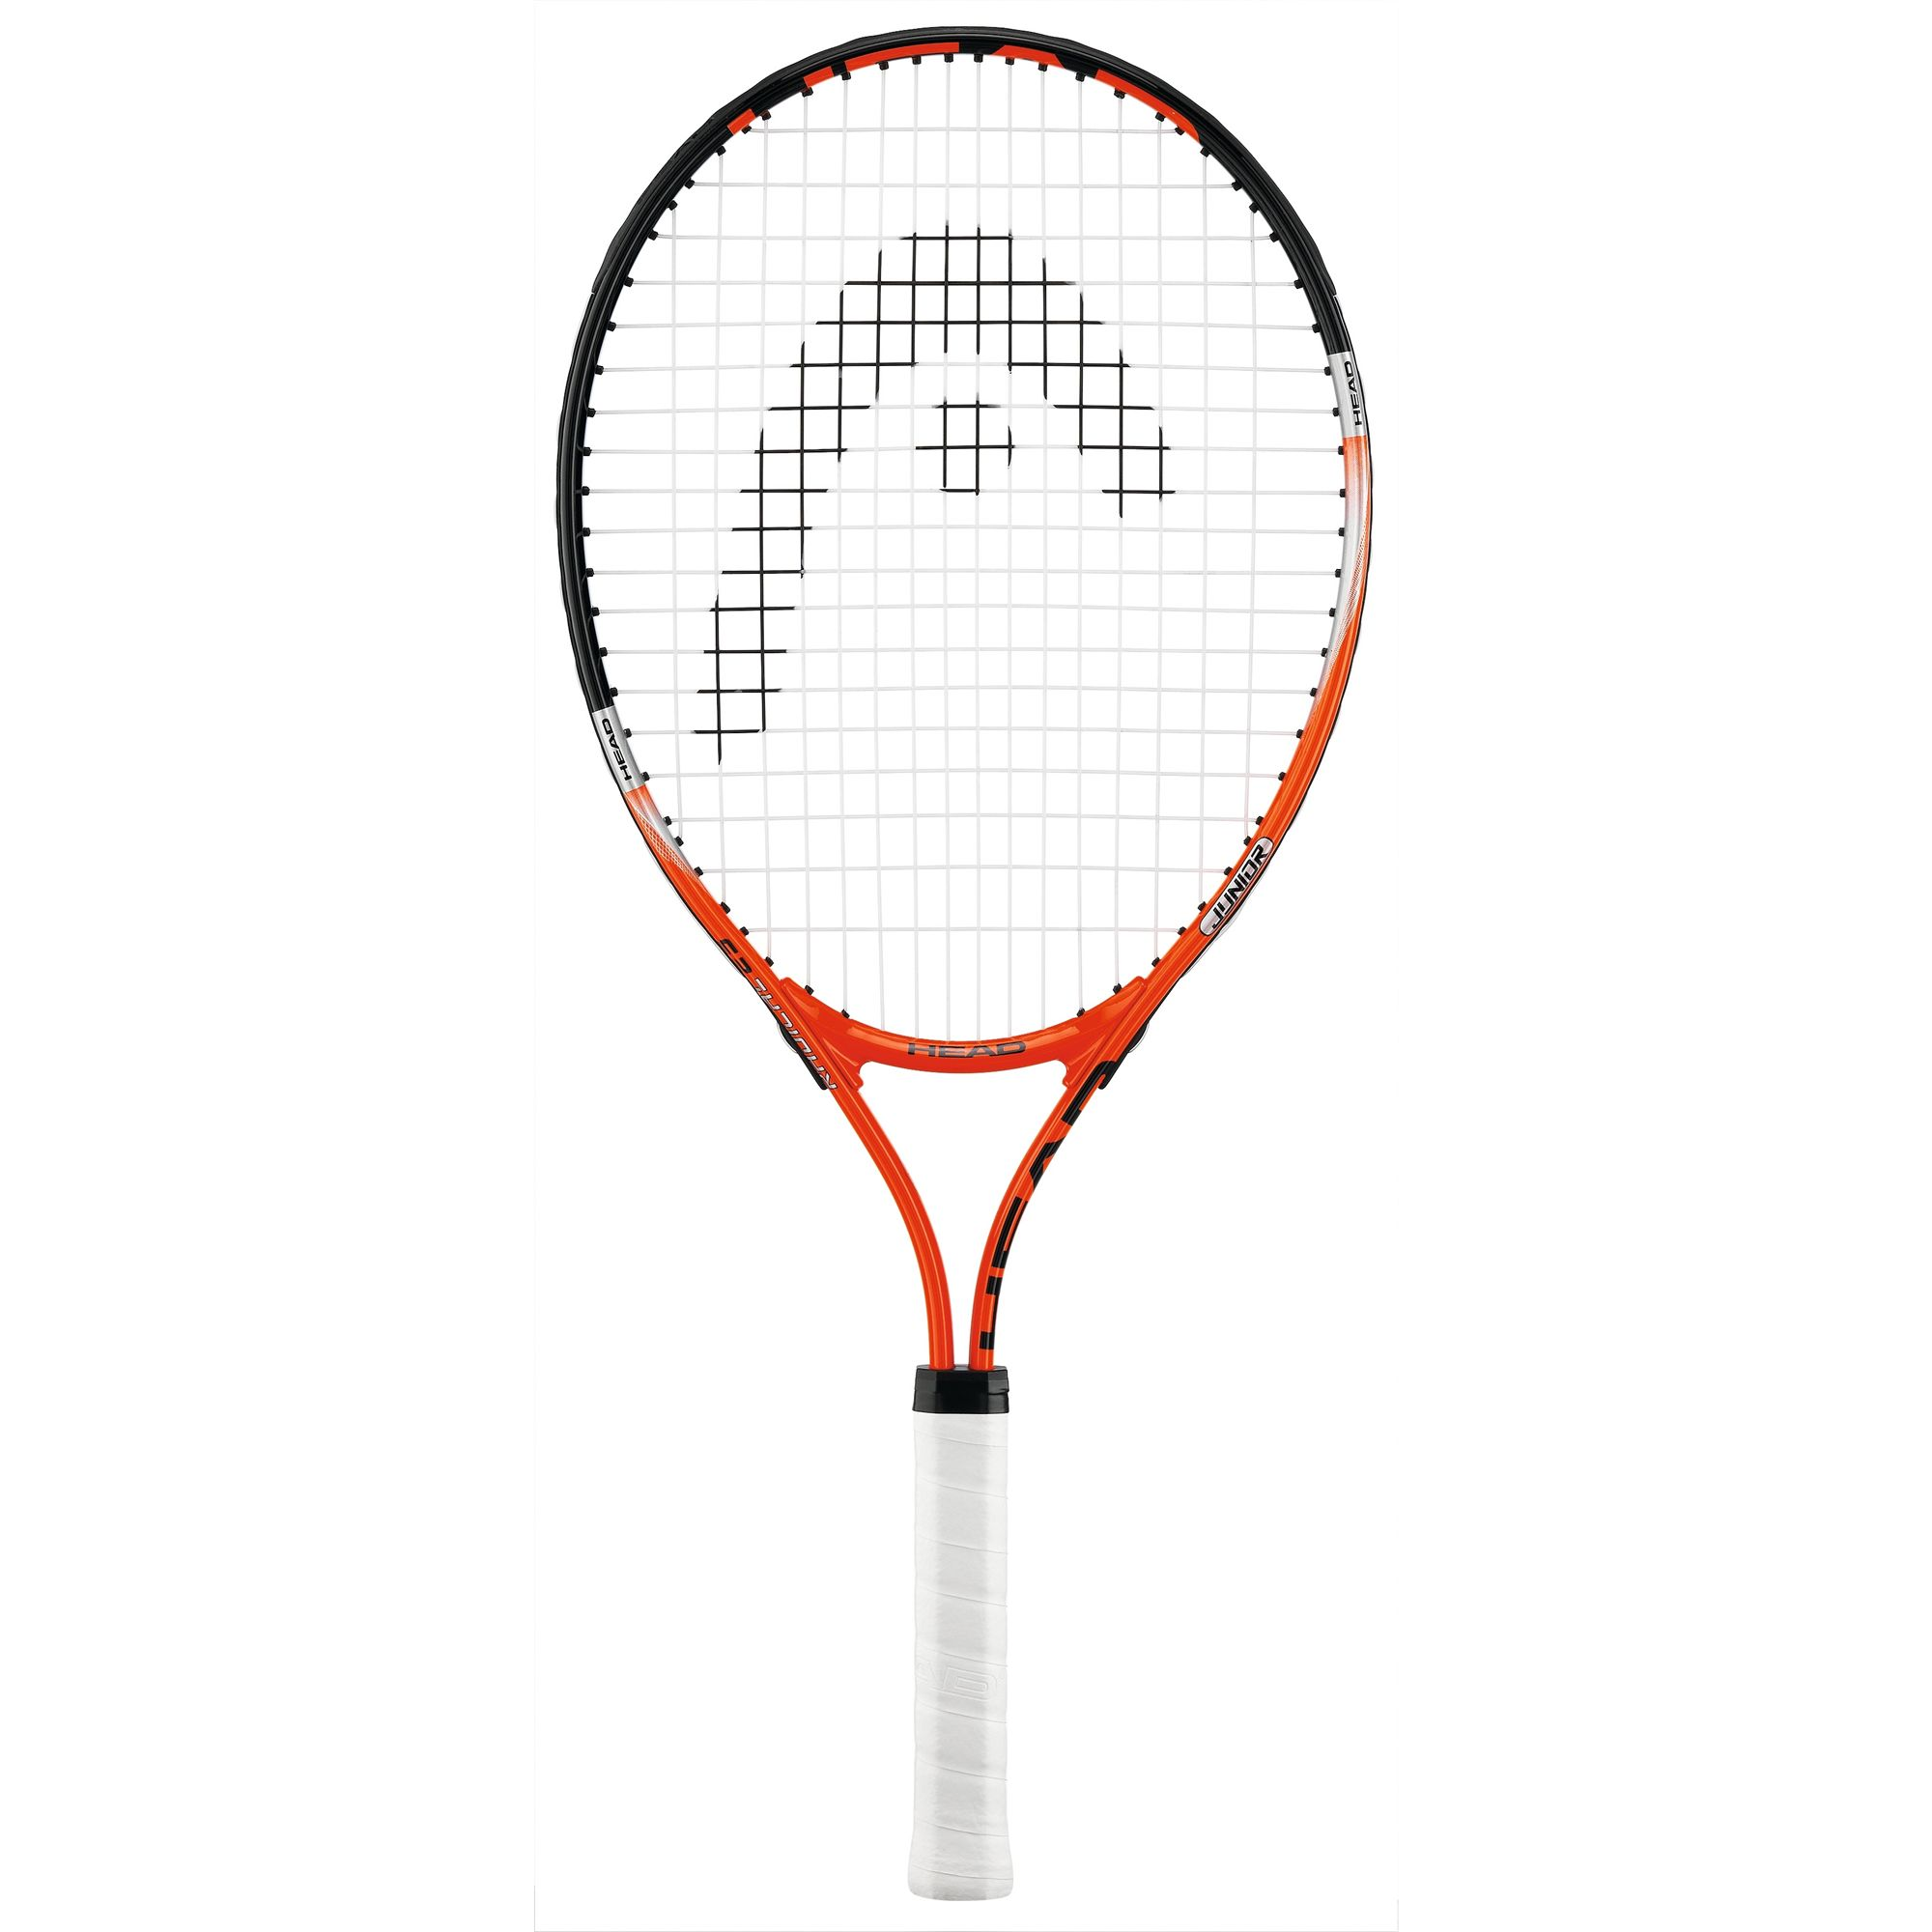 Pics Of Tennis Rackets